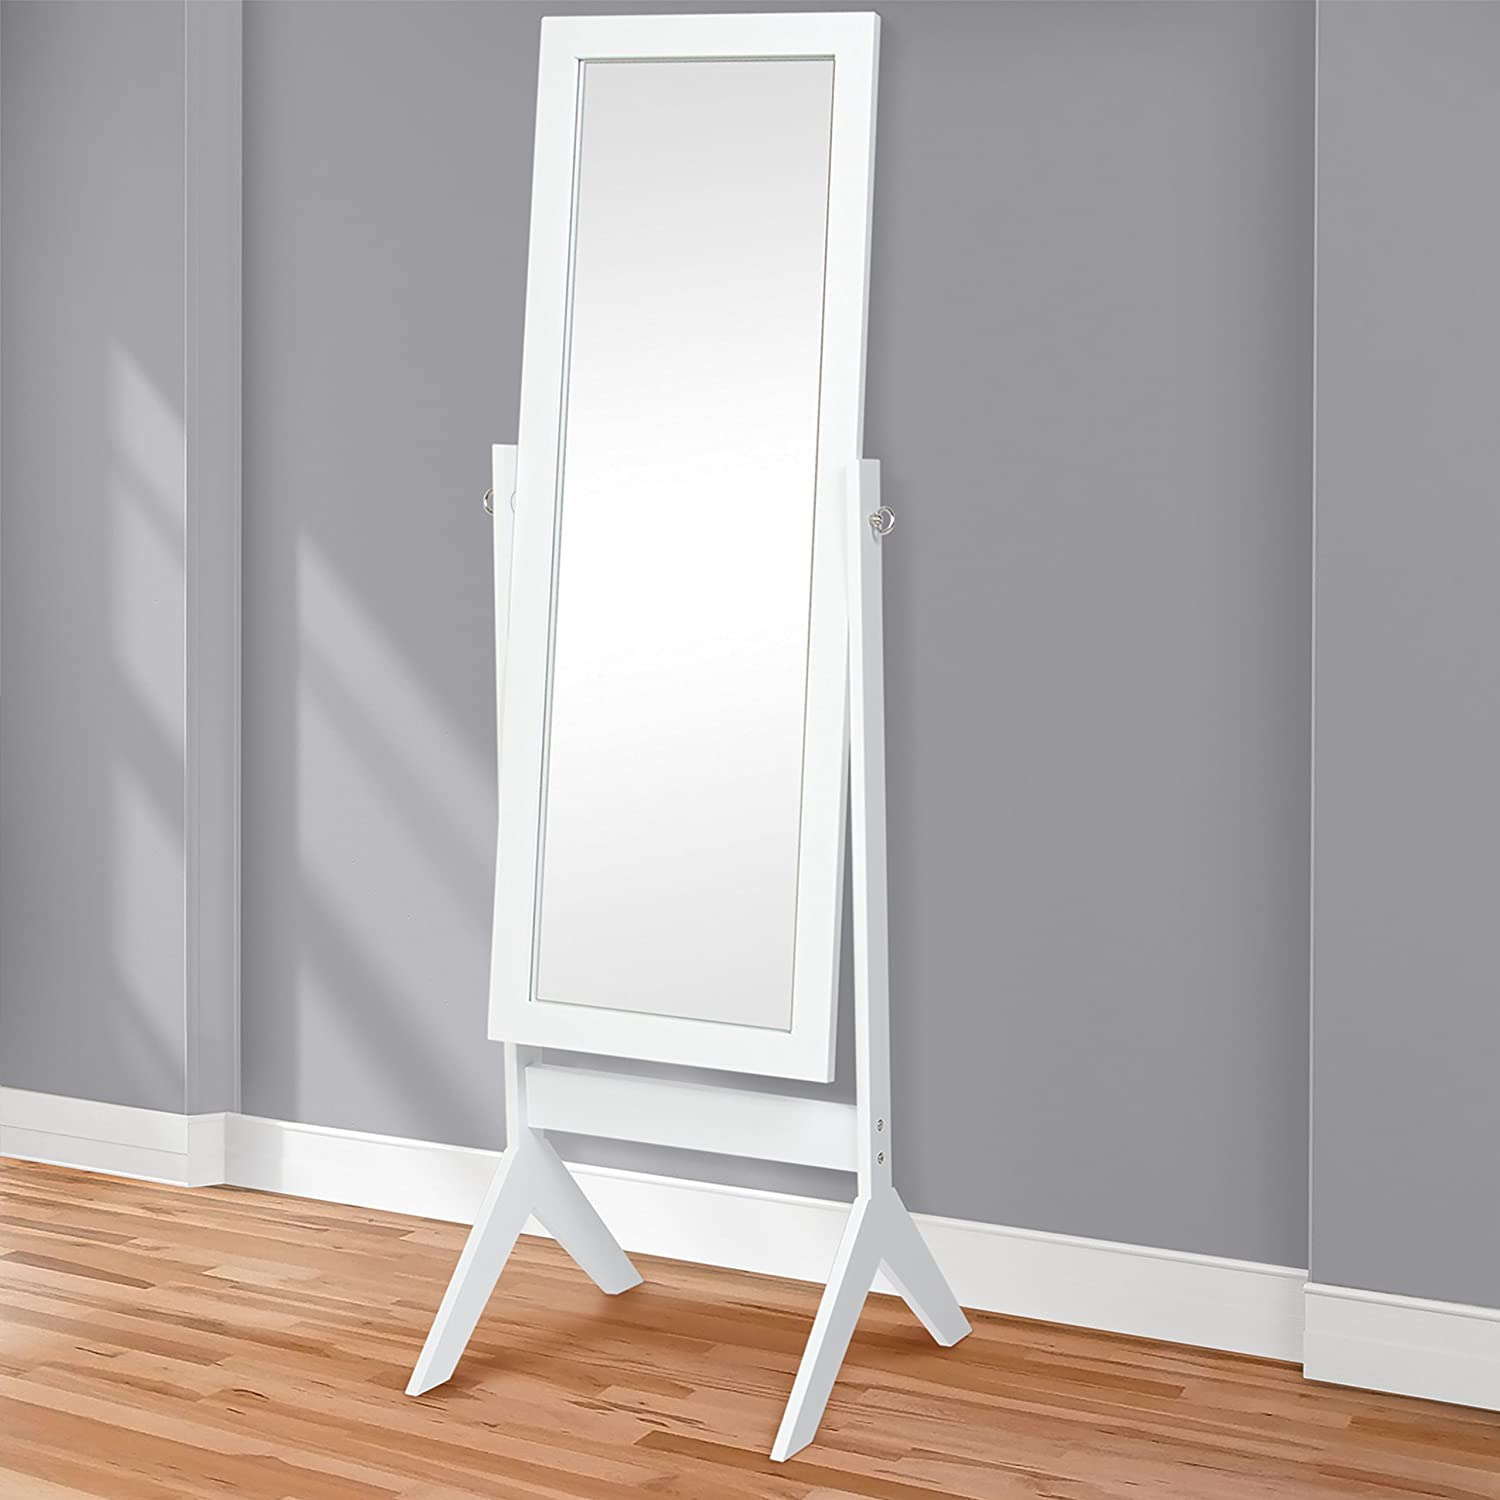 Best Choice Products Standing Cheval Floor Mirror Bedroom Home Furniture SKY2975